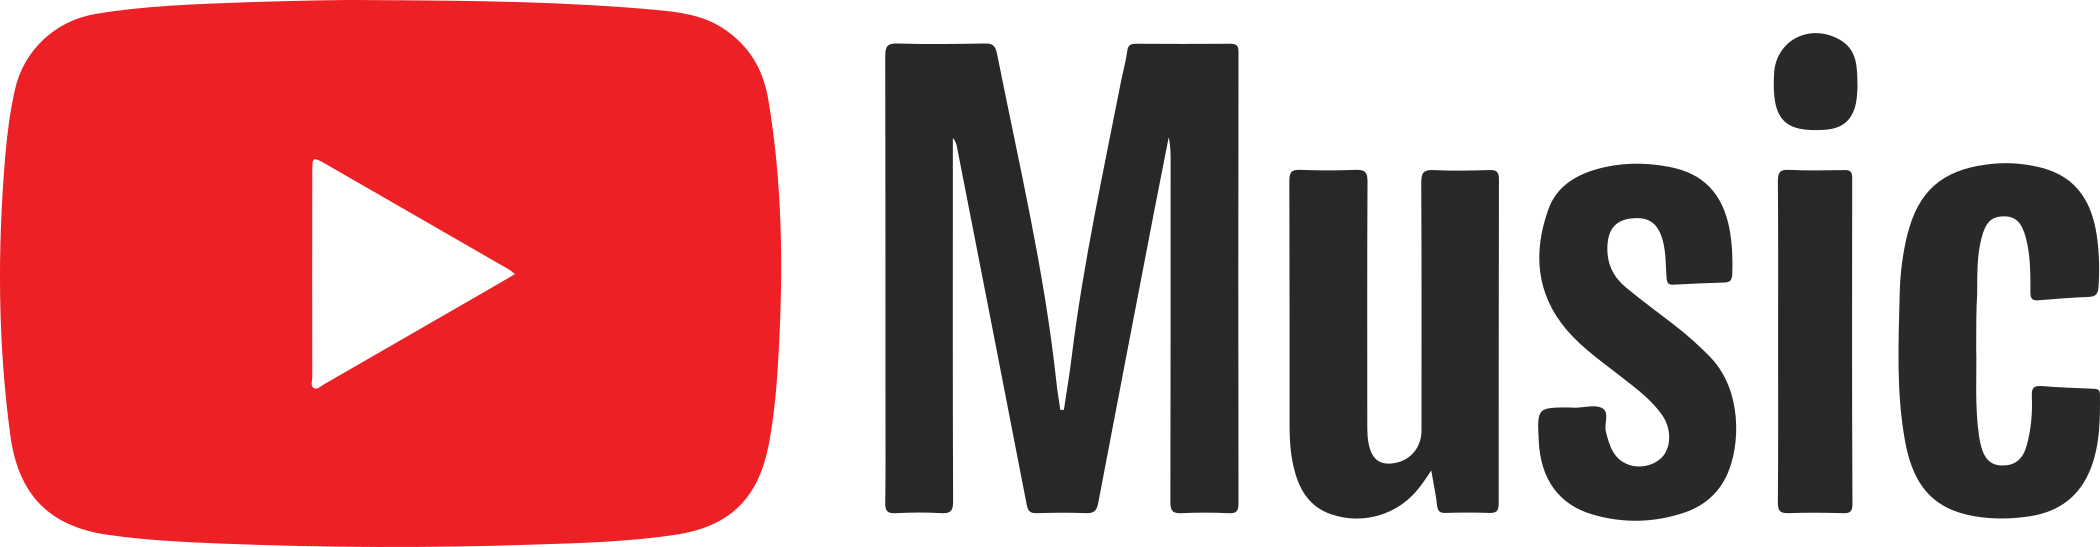 youtube music logo 3 - Youtube Music Logo